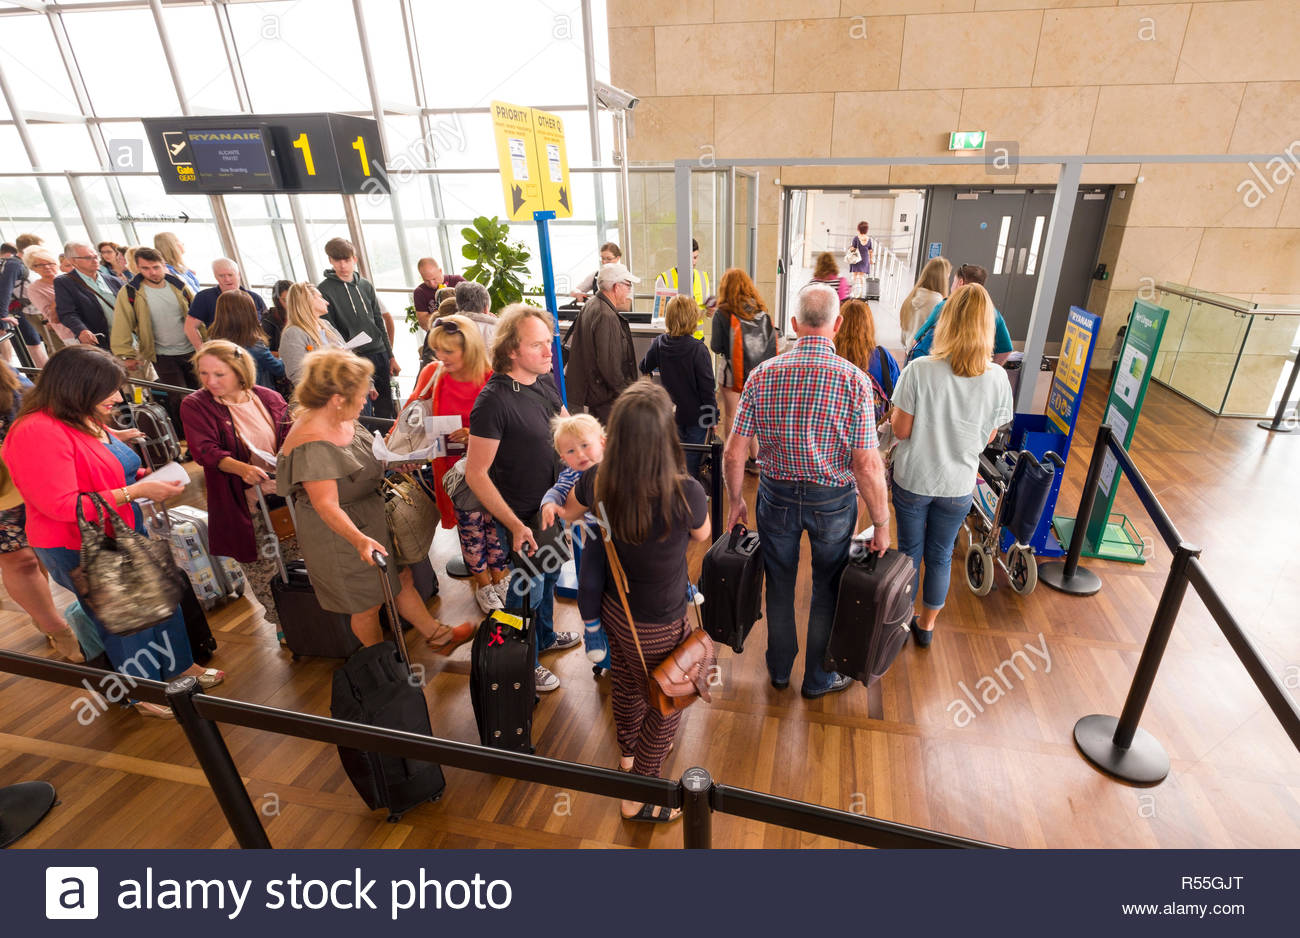 Passengers standing in line in departure lounge waiting to board aircraft at the Cork Airport, Lehenagh More, County Cork, Munster, Ireland - Stock Image